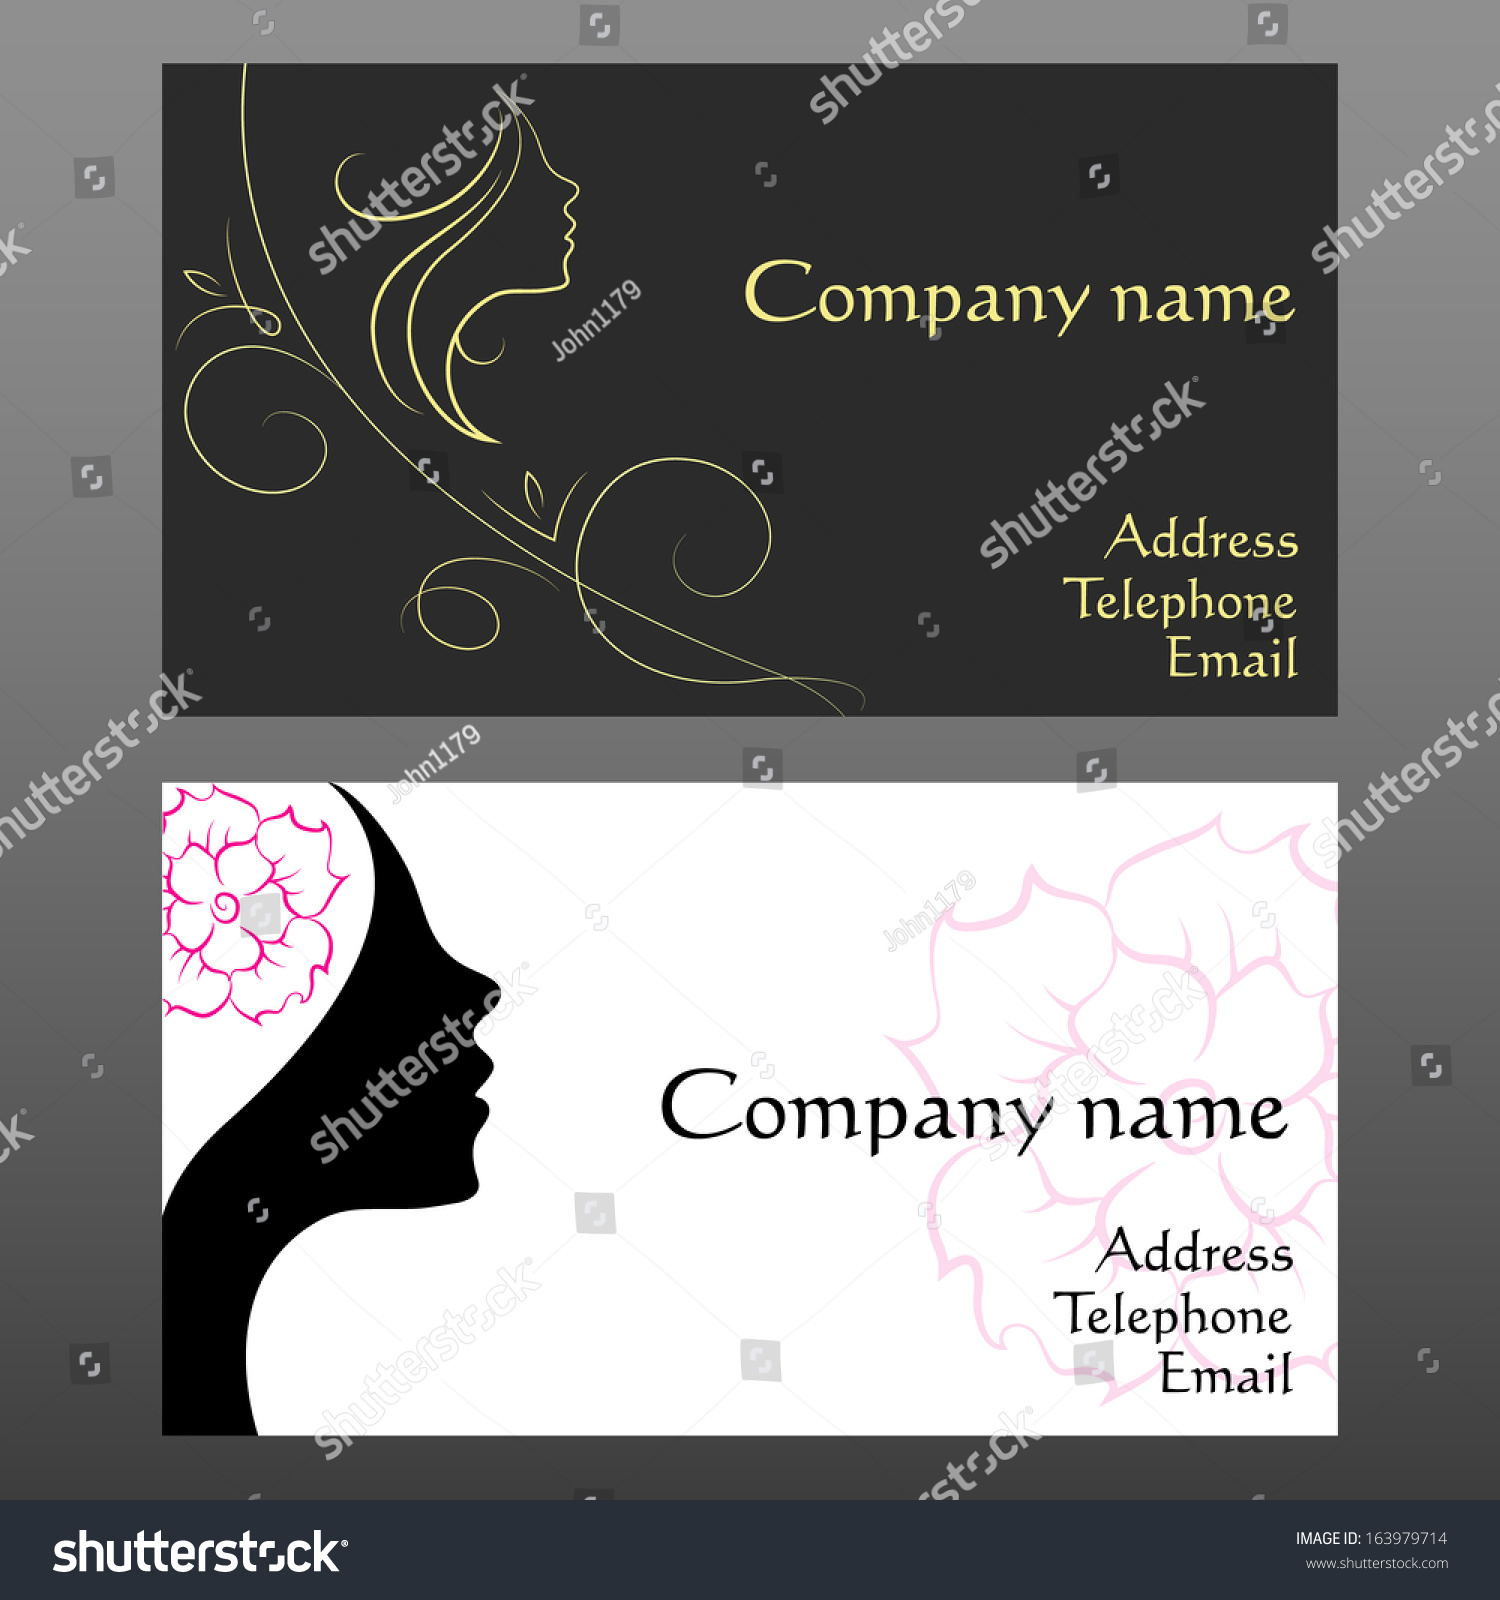 Business Card Hair Beauty Salon Stock Vector 163979714 - Shutterstock